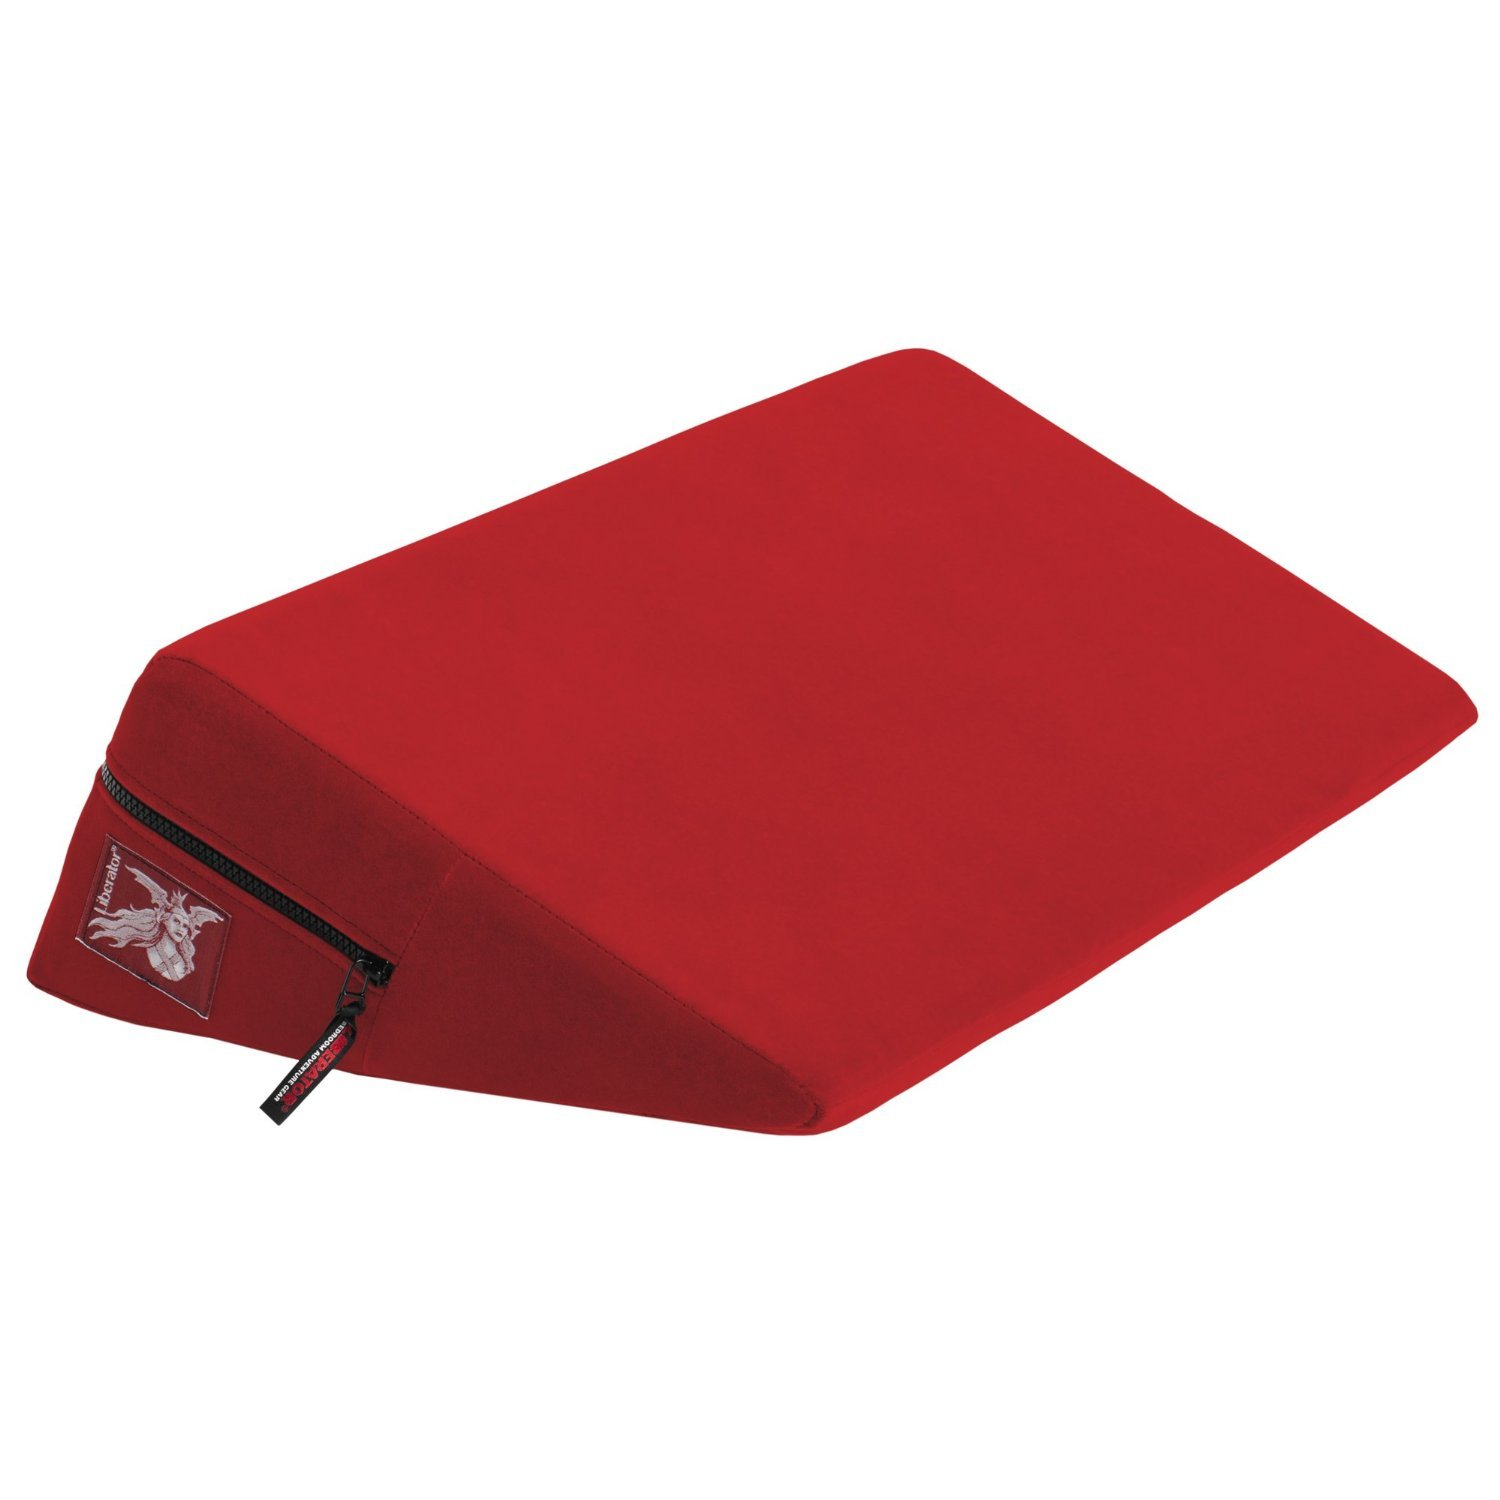 Liberator Wedge Intimate Positioning Pillow, Red Microfiber